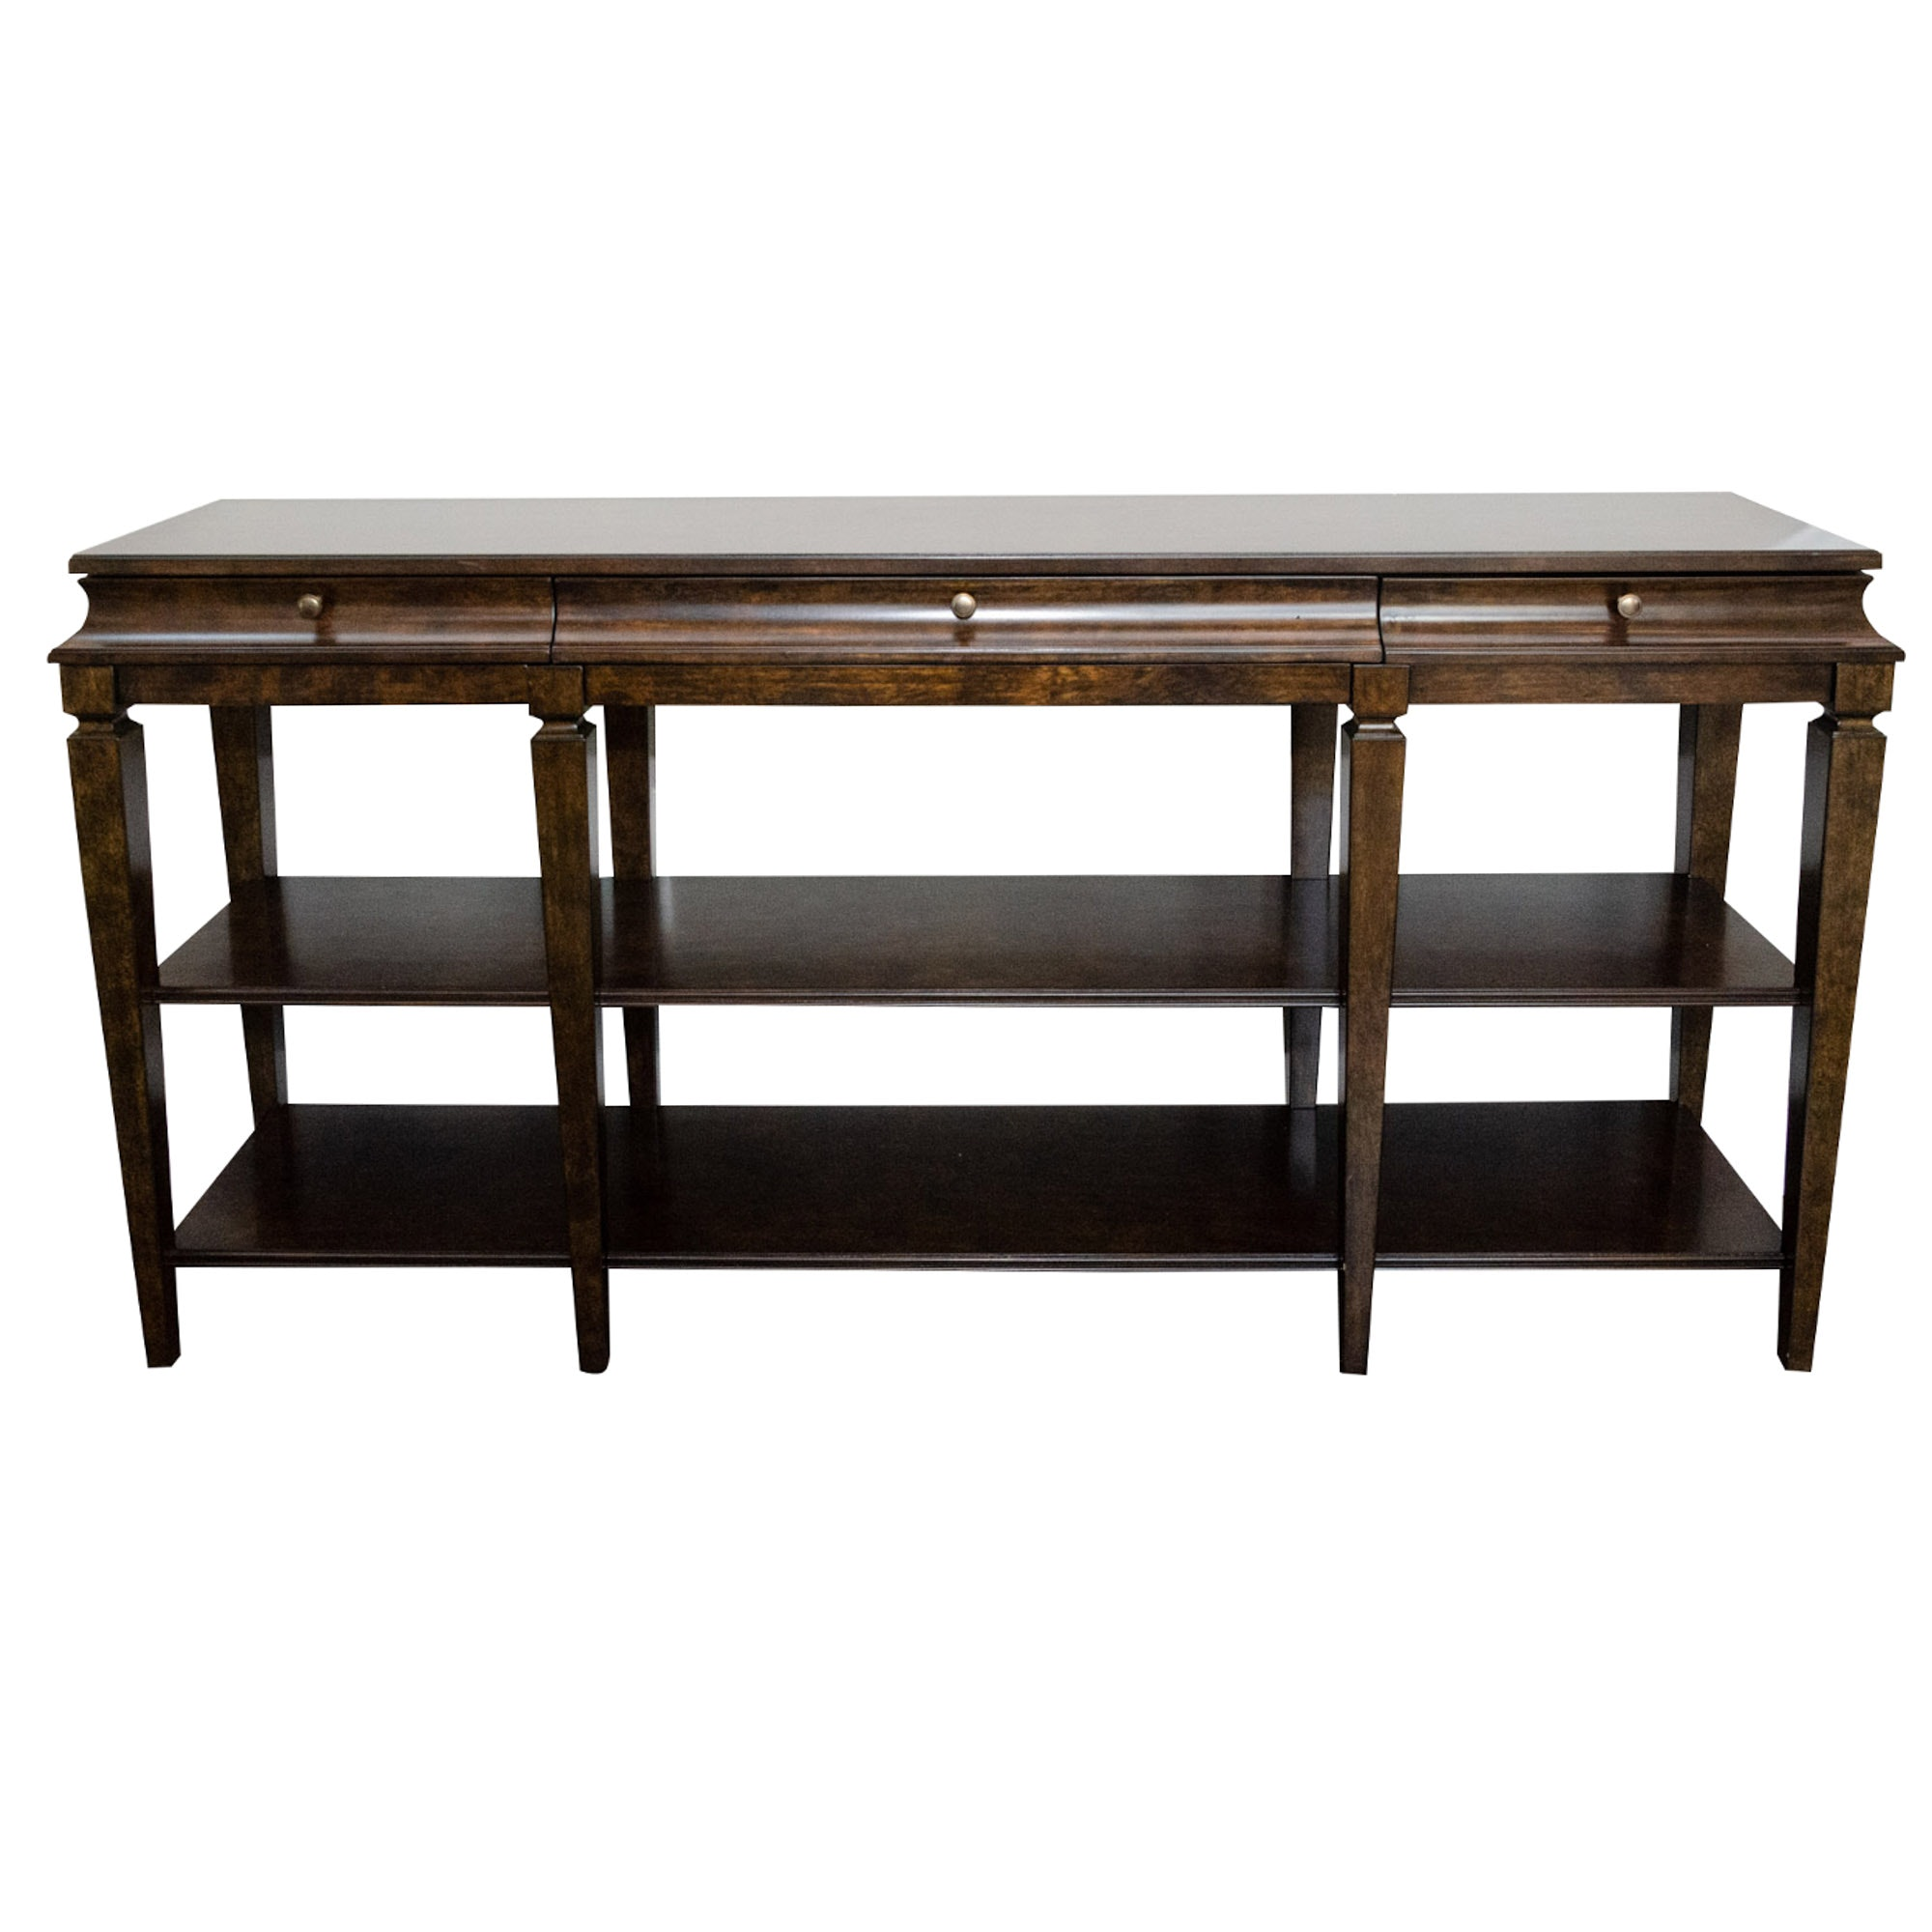 A.R.T. Furniture Contemporary Wooden Console Table